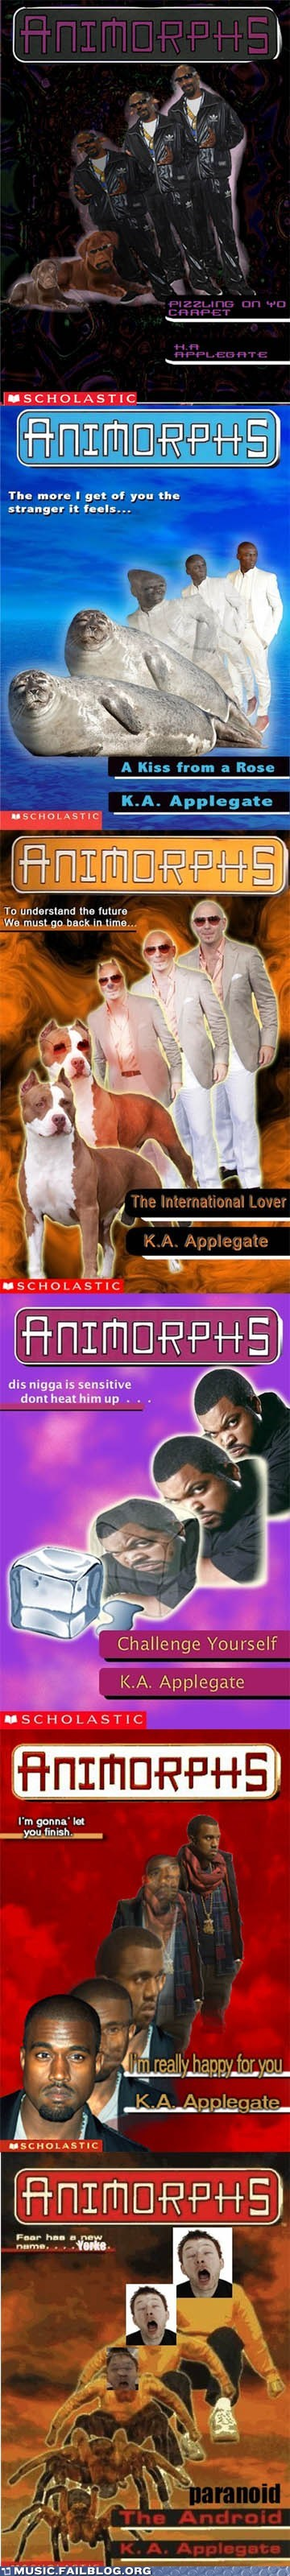 animorphs ice cube kanye west pitbull radiohead seal snoop dogg Thom Yorke